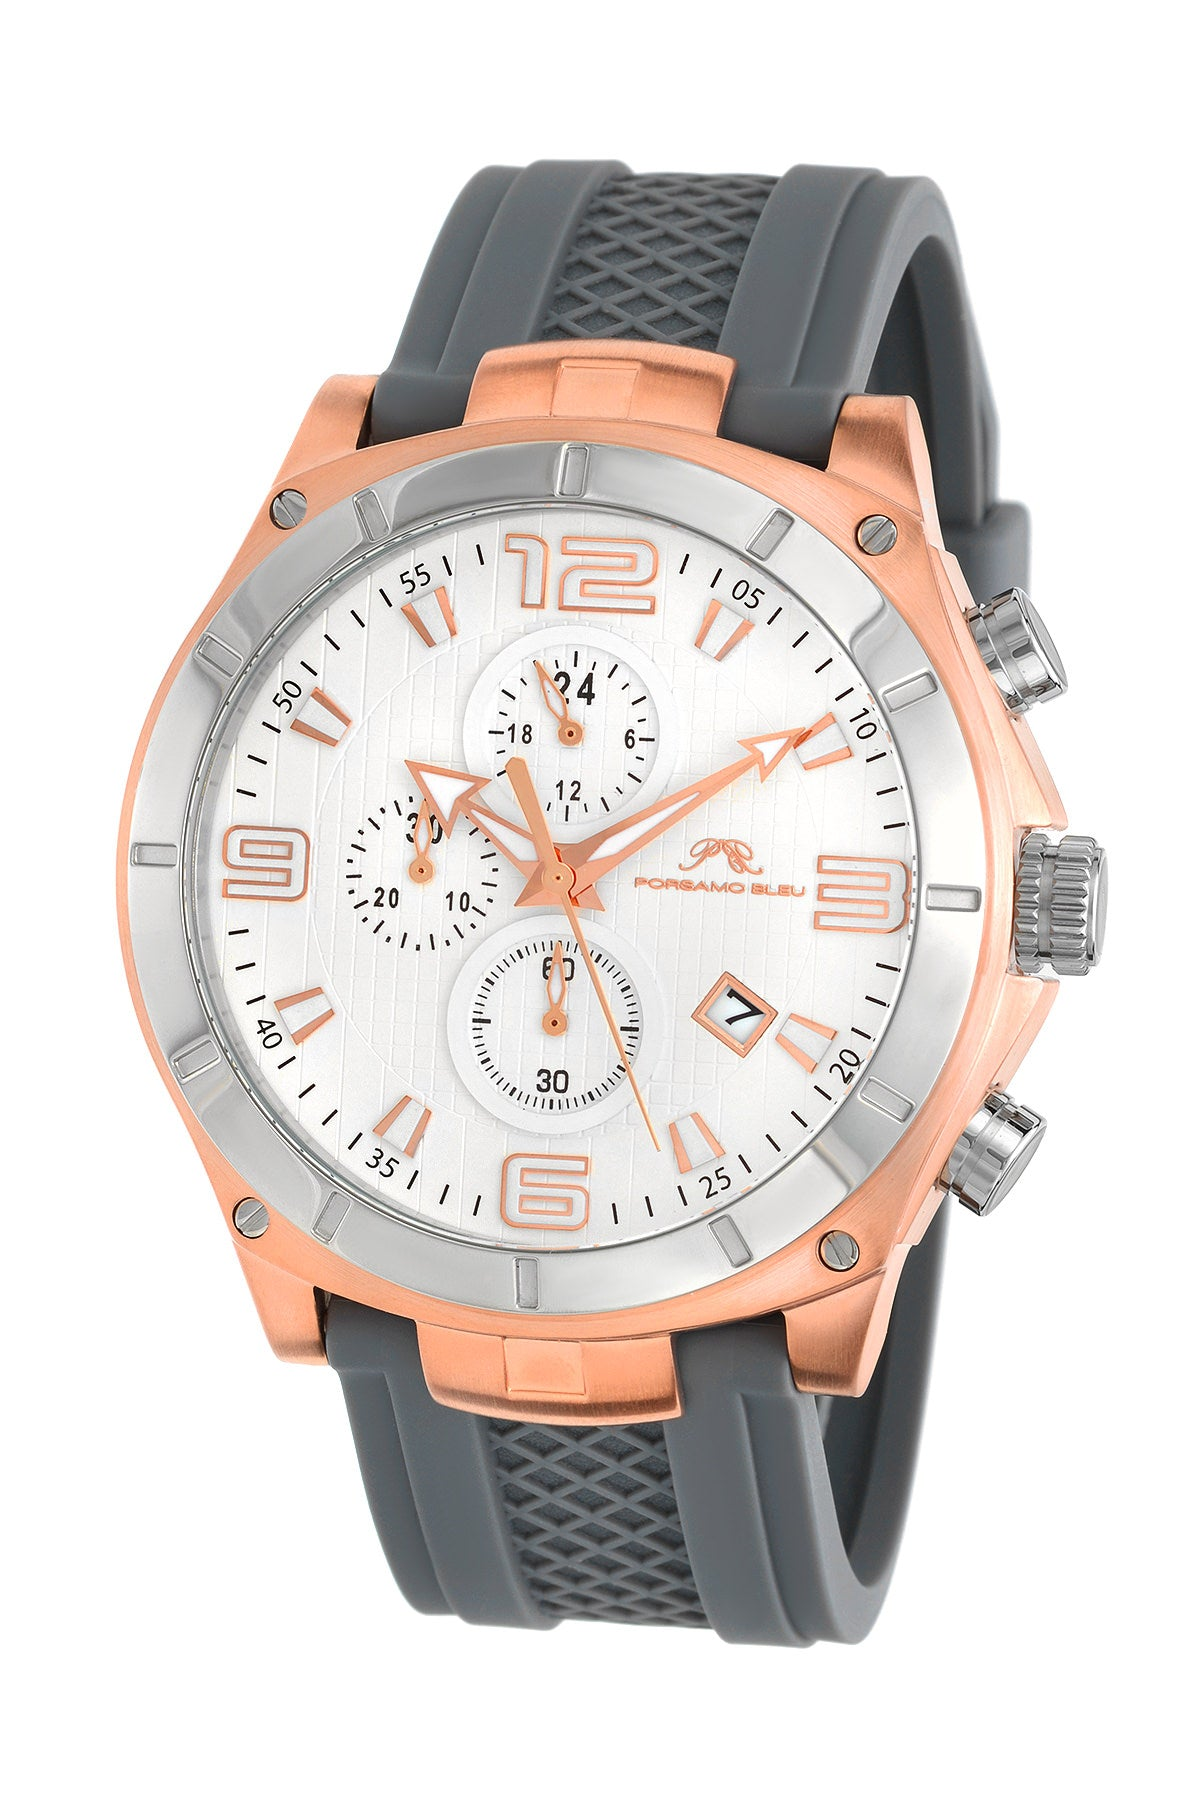 Porsamo Bleu Ethan luxury chronograph men's watch, silicone strap, rose, grey 411CETR